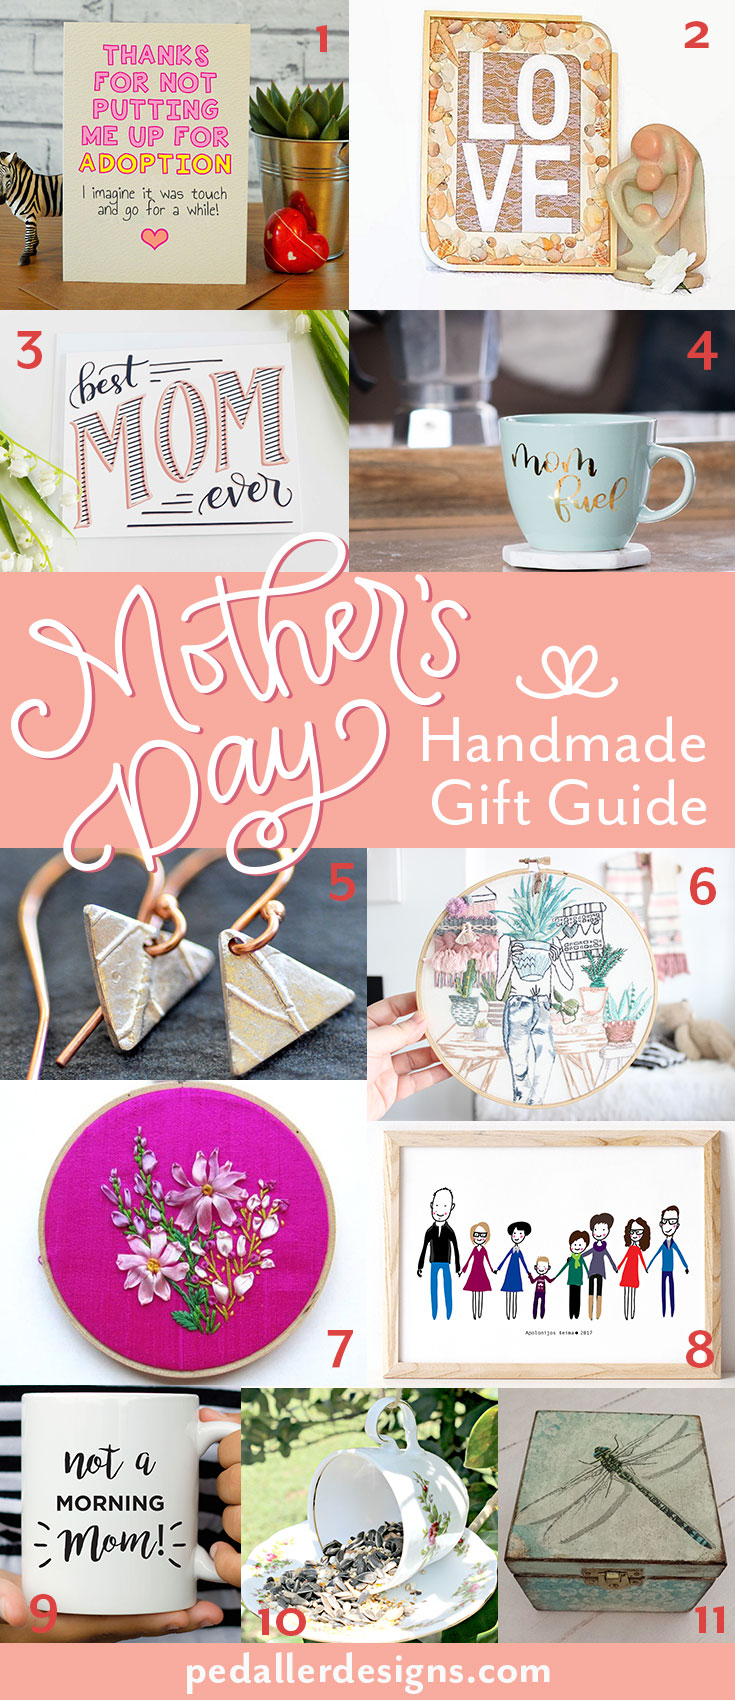 Stumped on what to get mom this Mother's Day? Let her know just how much you appreciate her with a thoughtful, handmade gift form this curated collection of gifts she is sure to love.